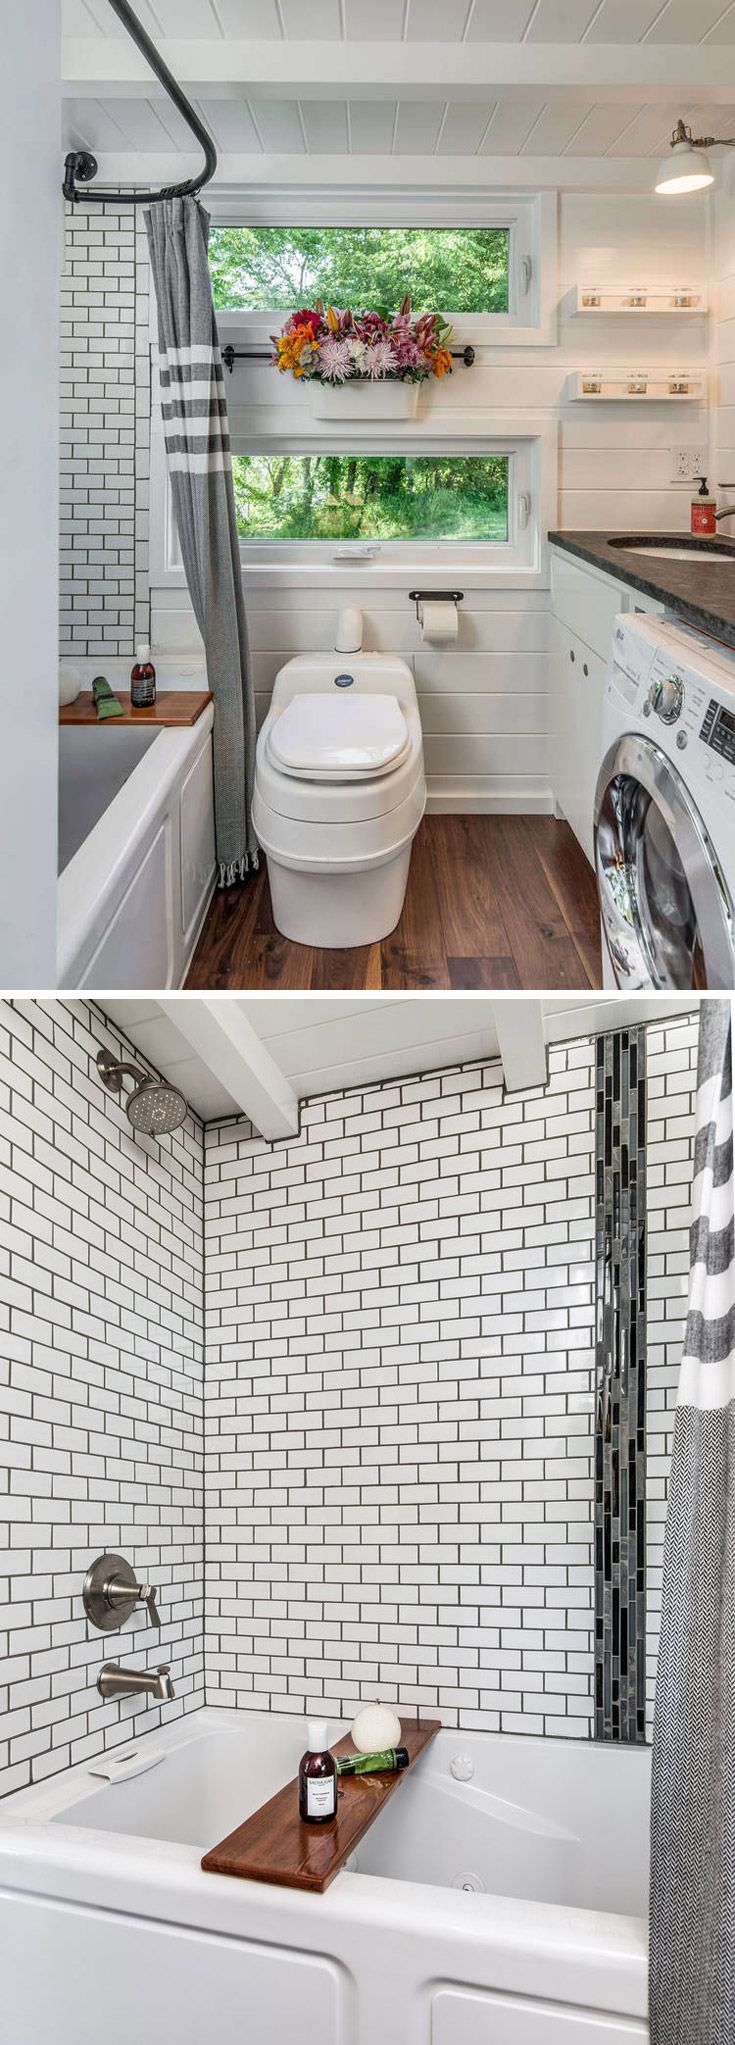 44 best Tiny House Bathrooms images by Tiny Living on Pinterest ...